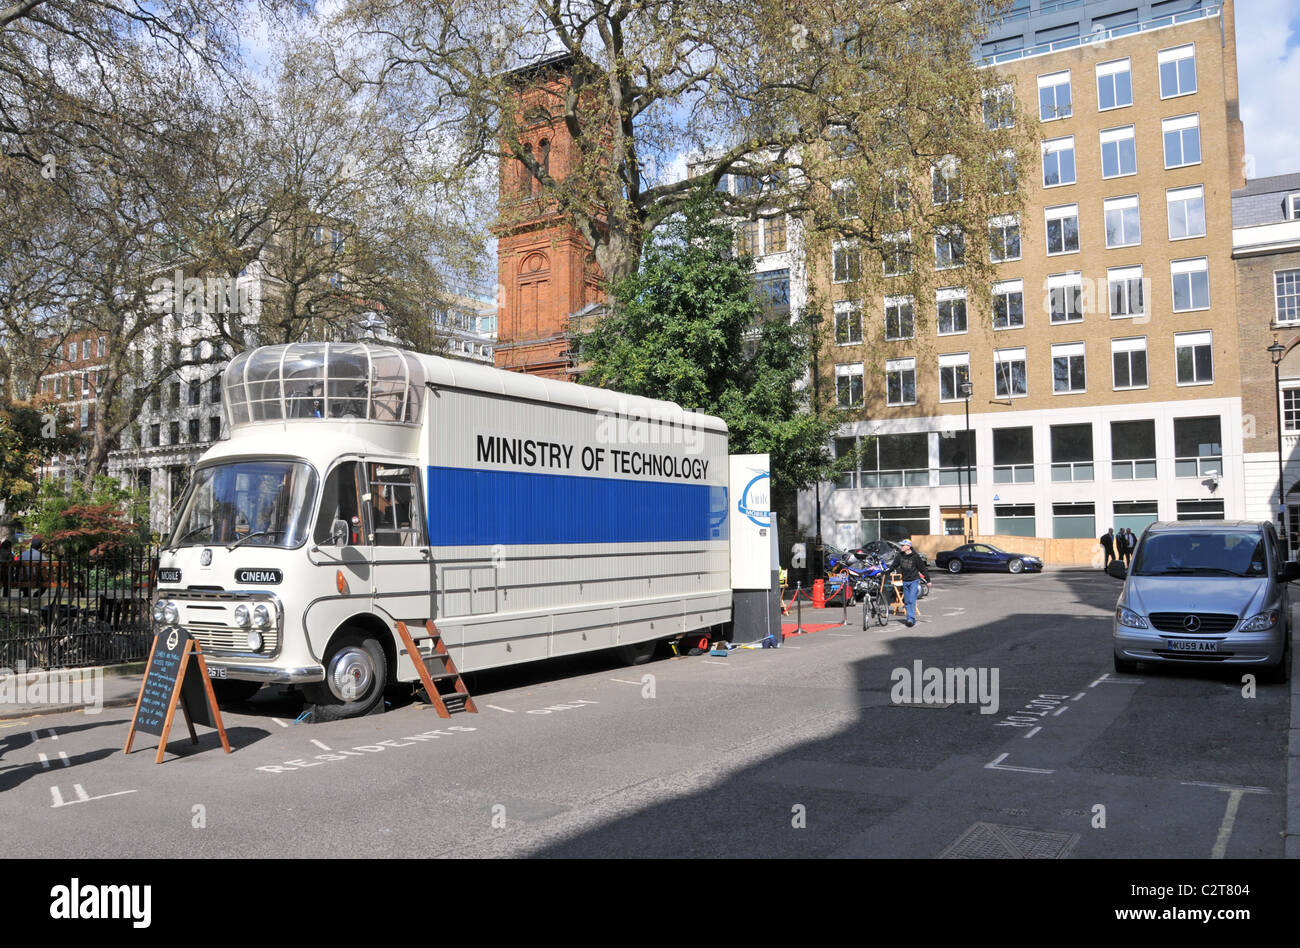 Mobile Cinema Soho square Ministry of Technology films movies 1950s Stock Photo